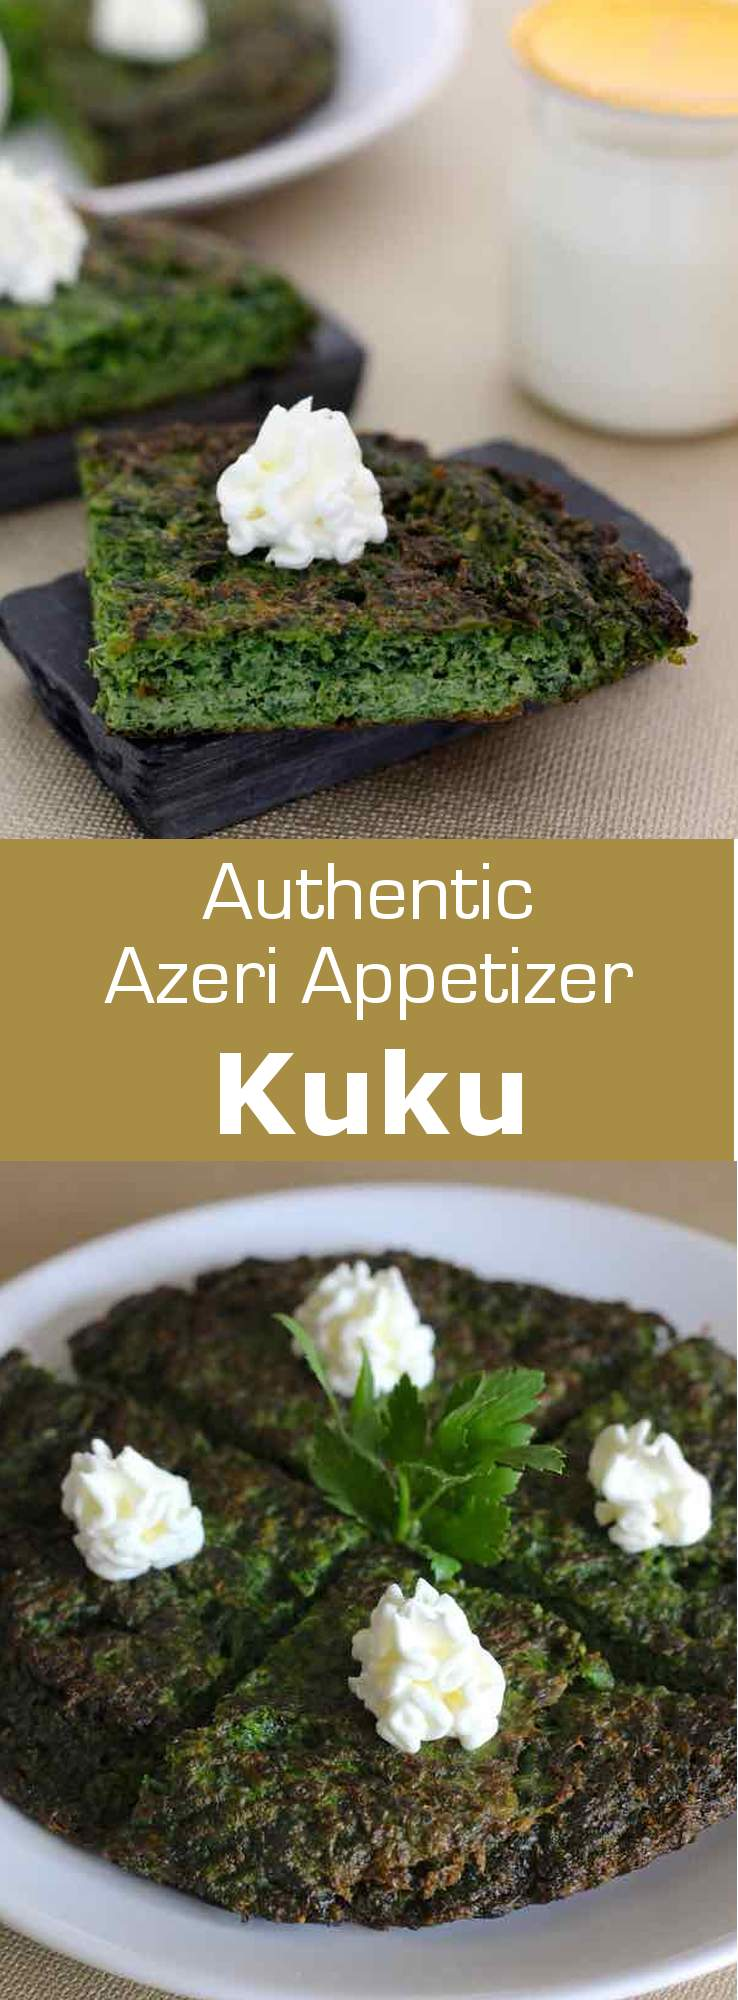 Goyerti küküsü or kuku with fresh herbs is a delicious traditional Azeri appetizer prepared with herbs and spinach combined with eggs. #azerbaijan #appetizer #196flavors